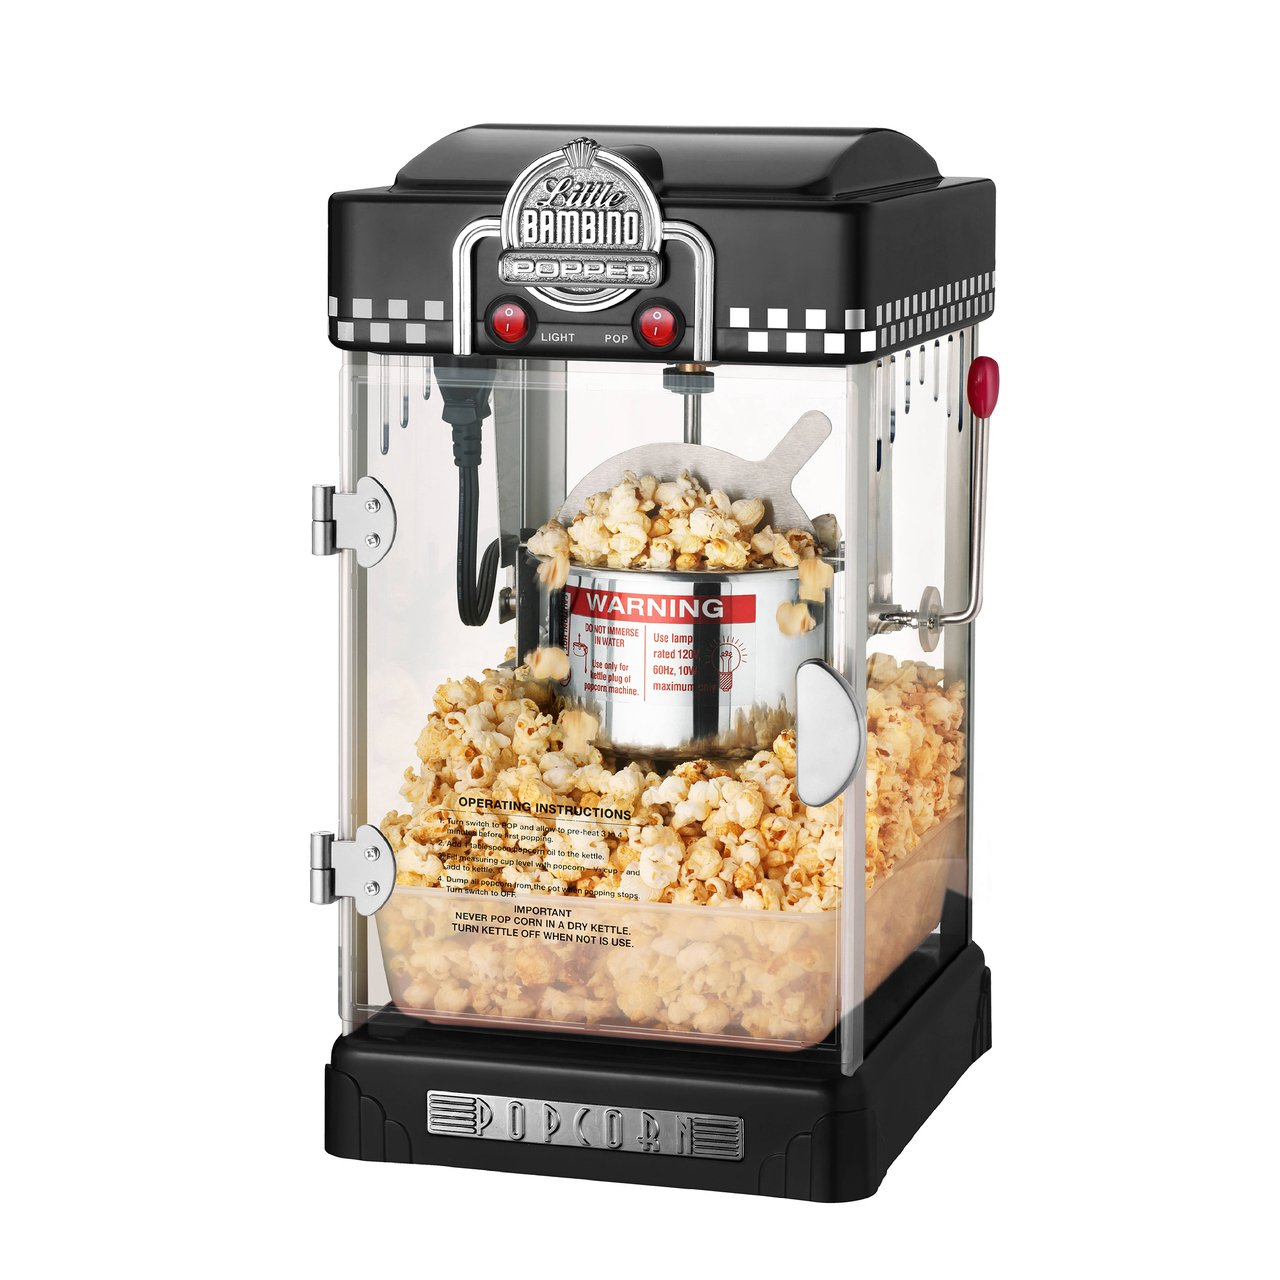 Great Northern Popcorn Company 6072 GNP Little Bambino BlackGNP Little Bambino 2-1/2 Ounce Retro Style Popcorn Popper Machine by Great Northern Popcorn Company (Image #2)